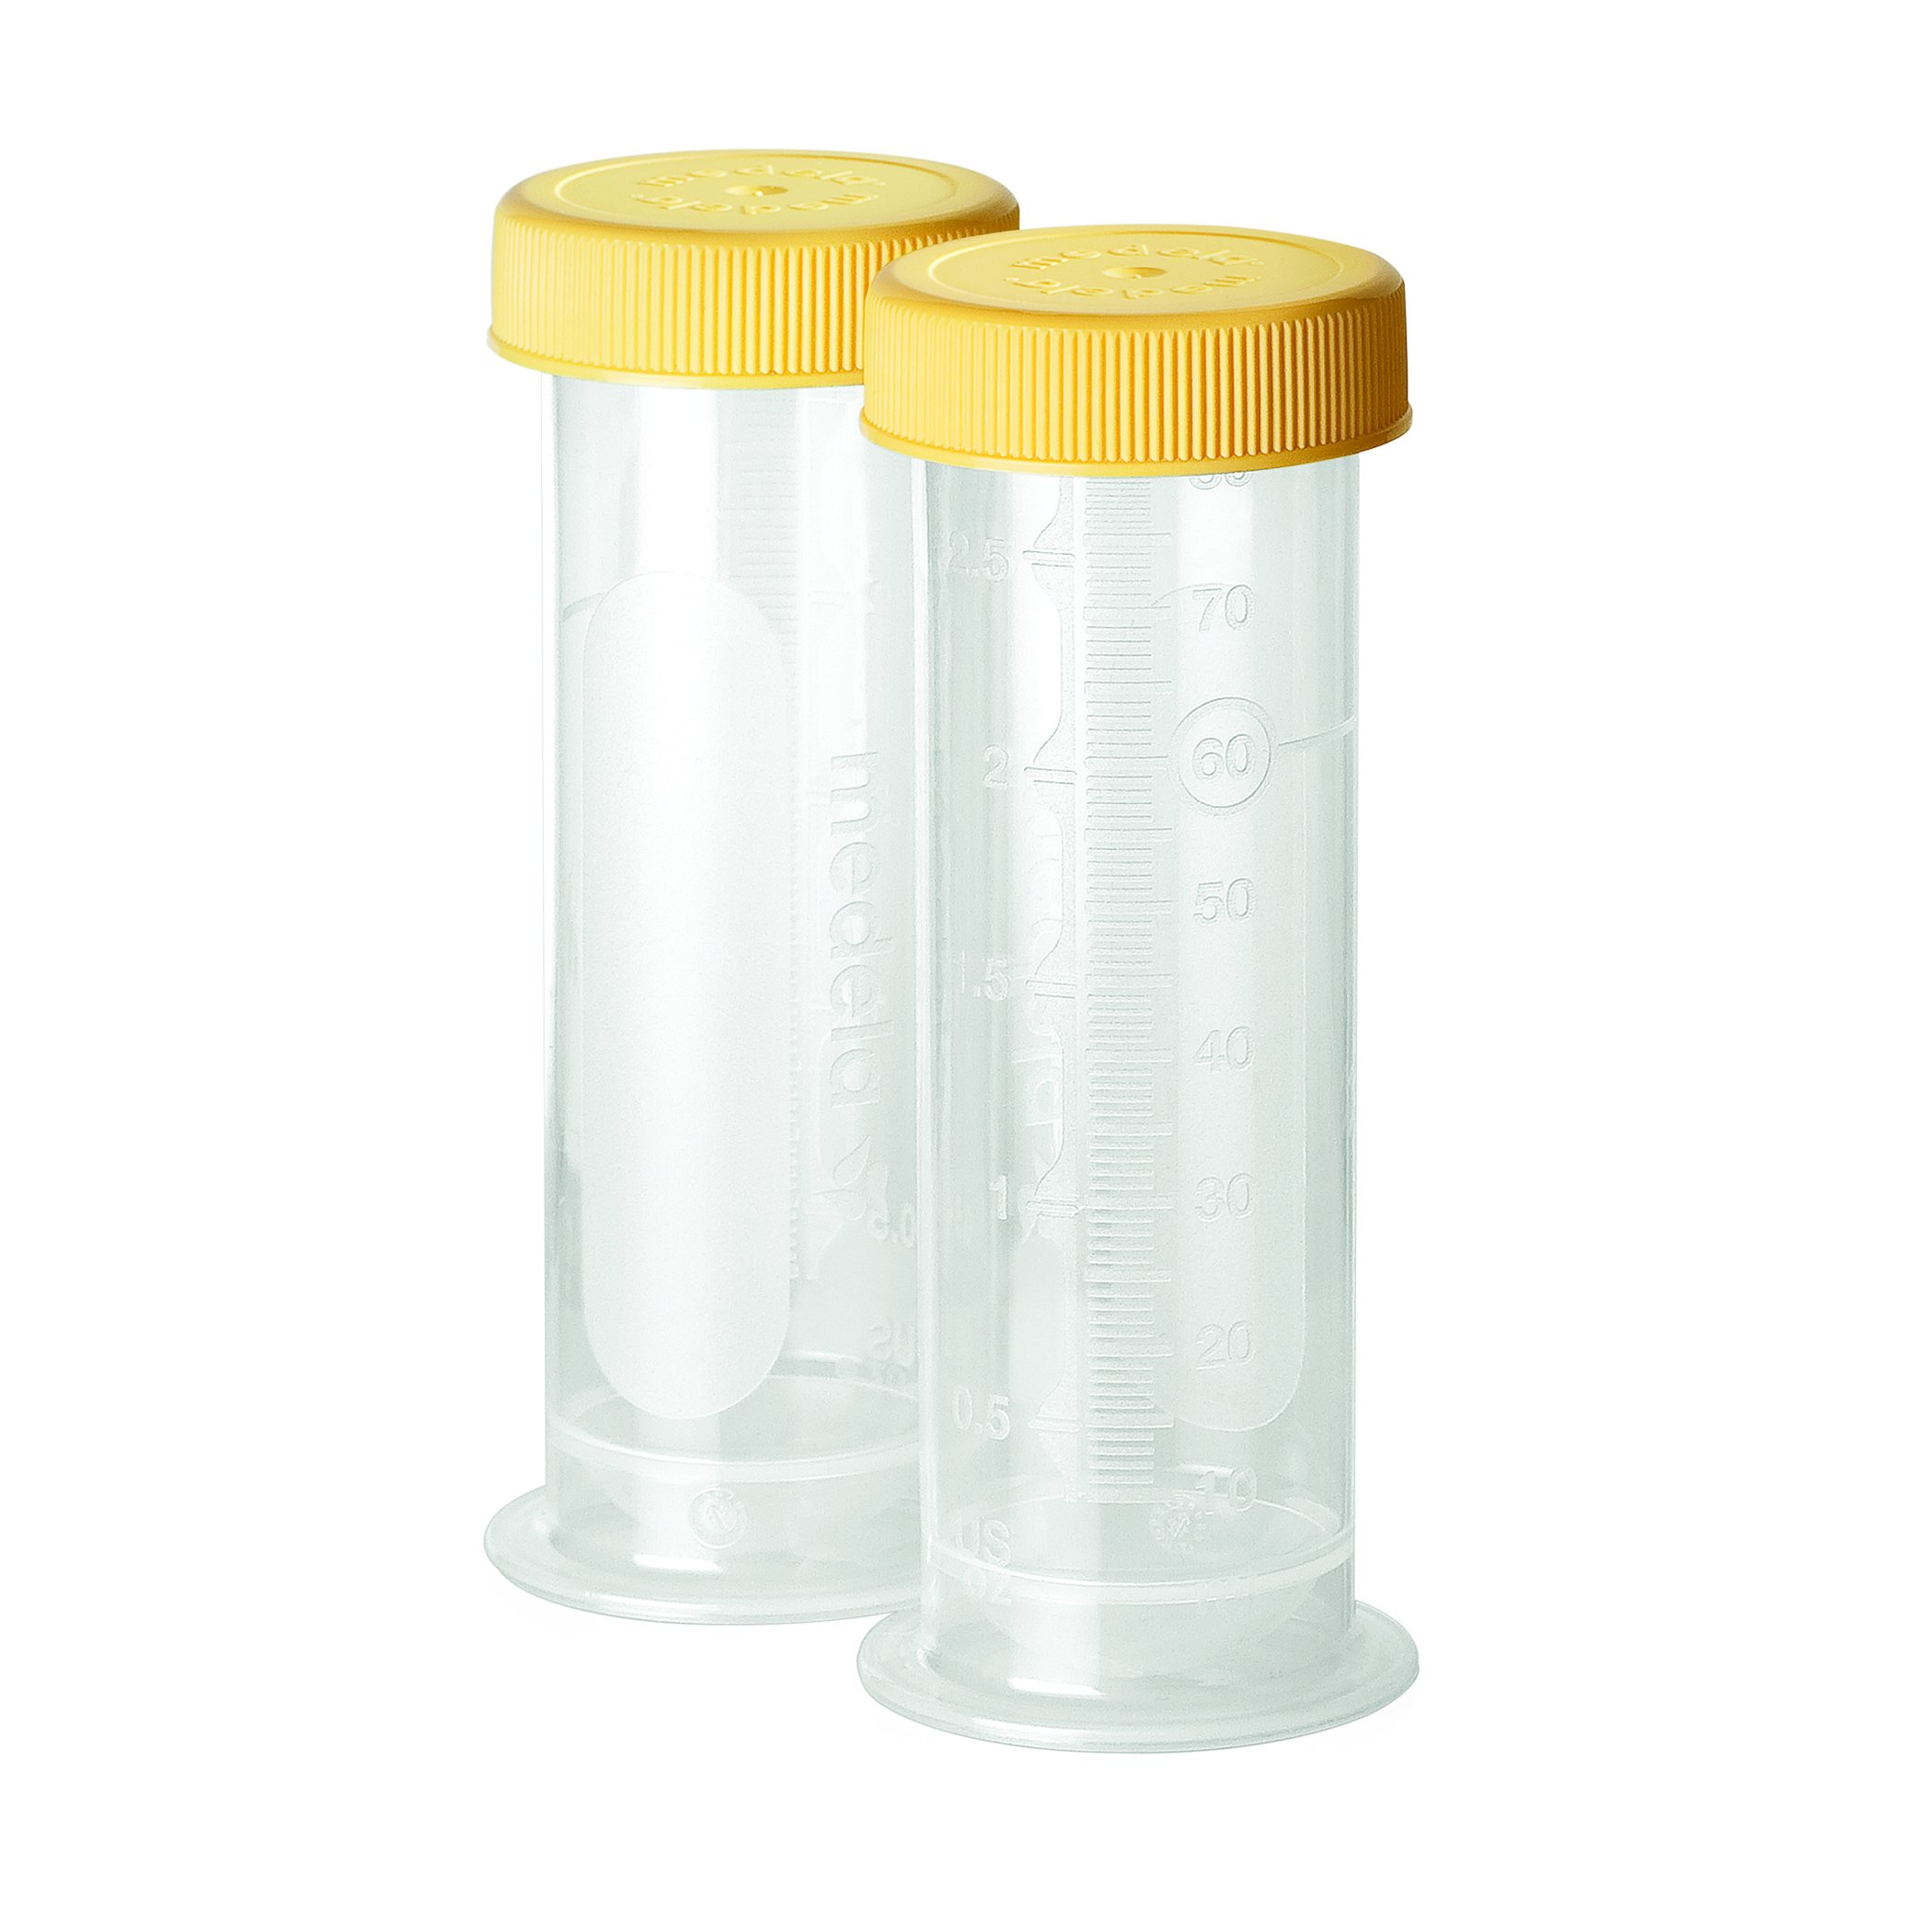 Medela Breast Milk Freezing & Storage Containers, 2.7 Ounce, 12 Count